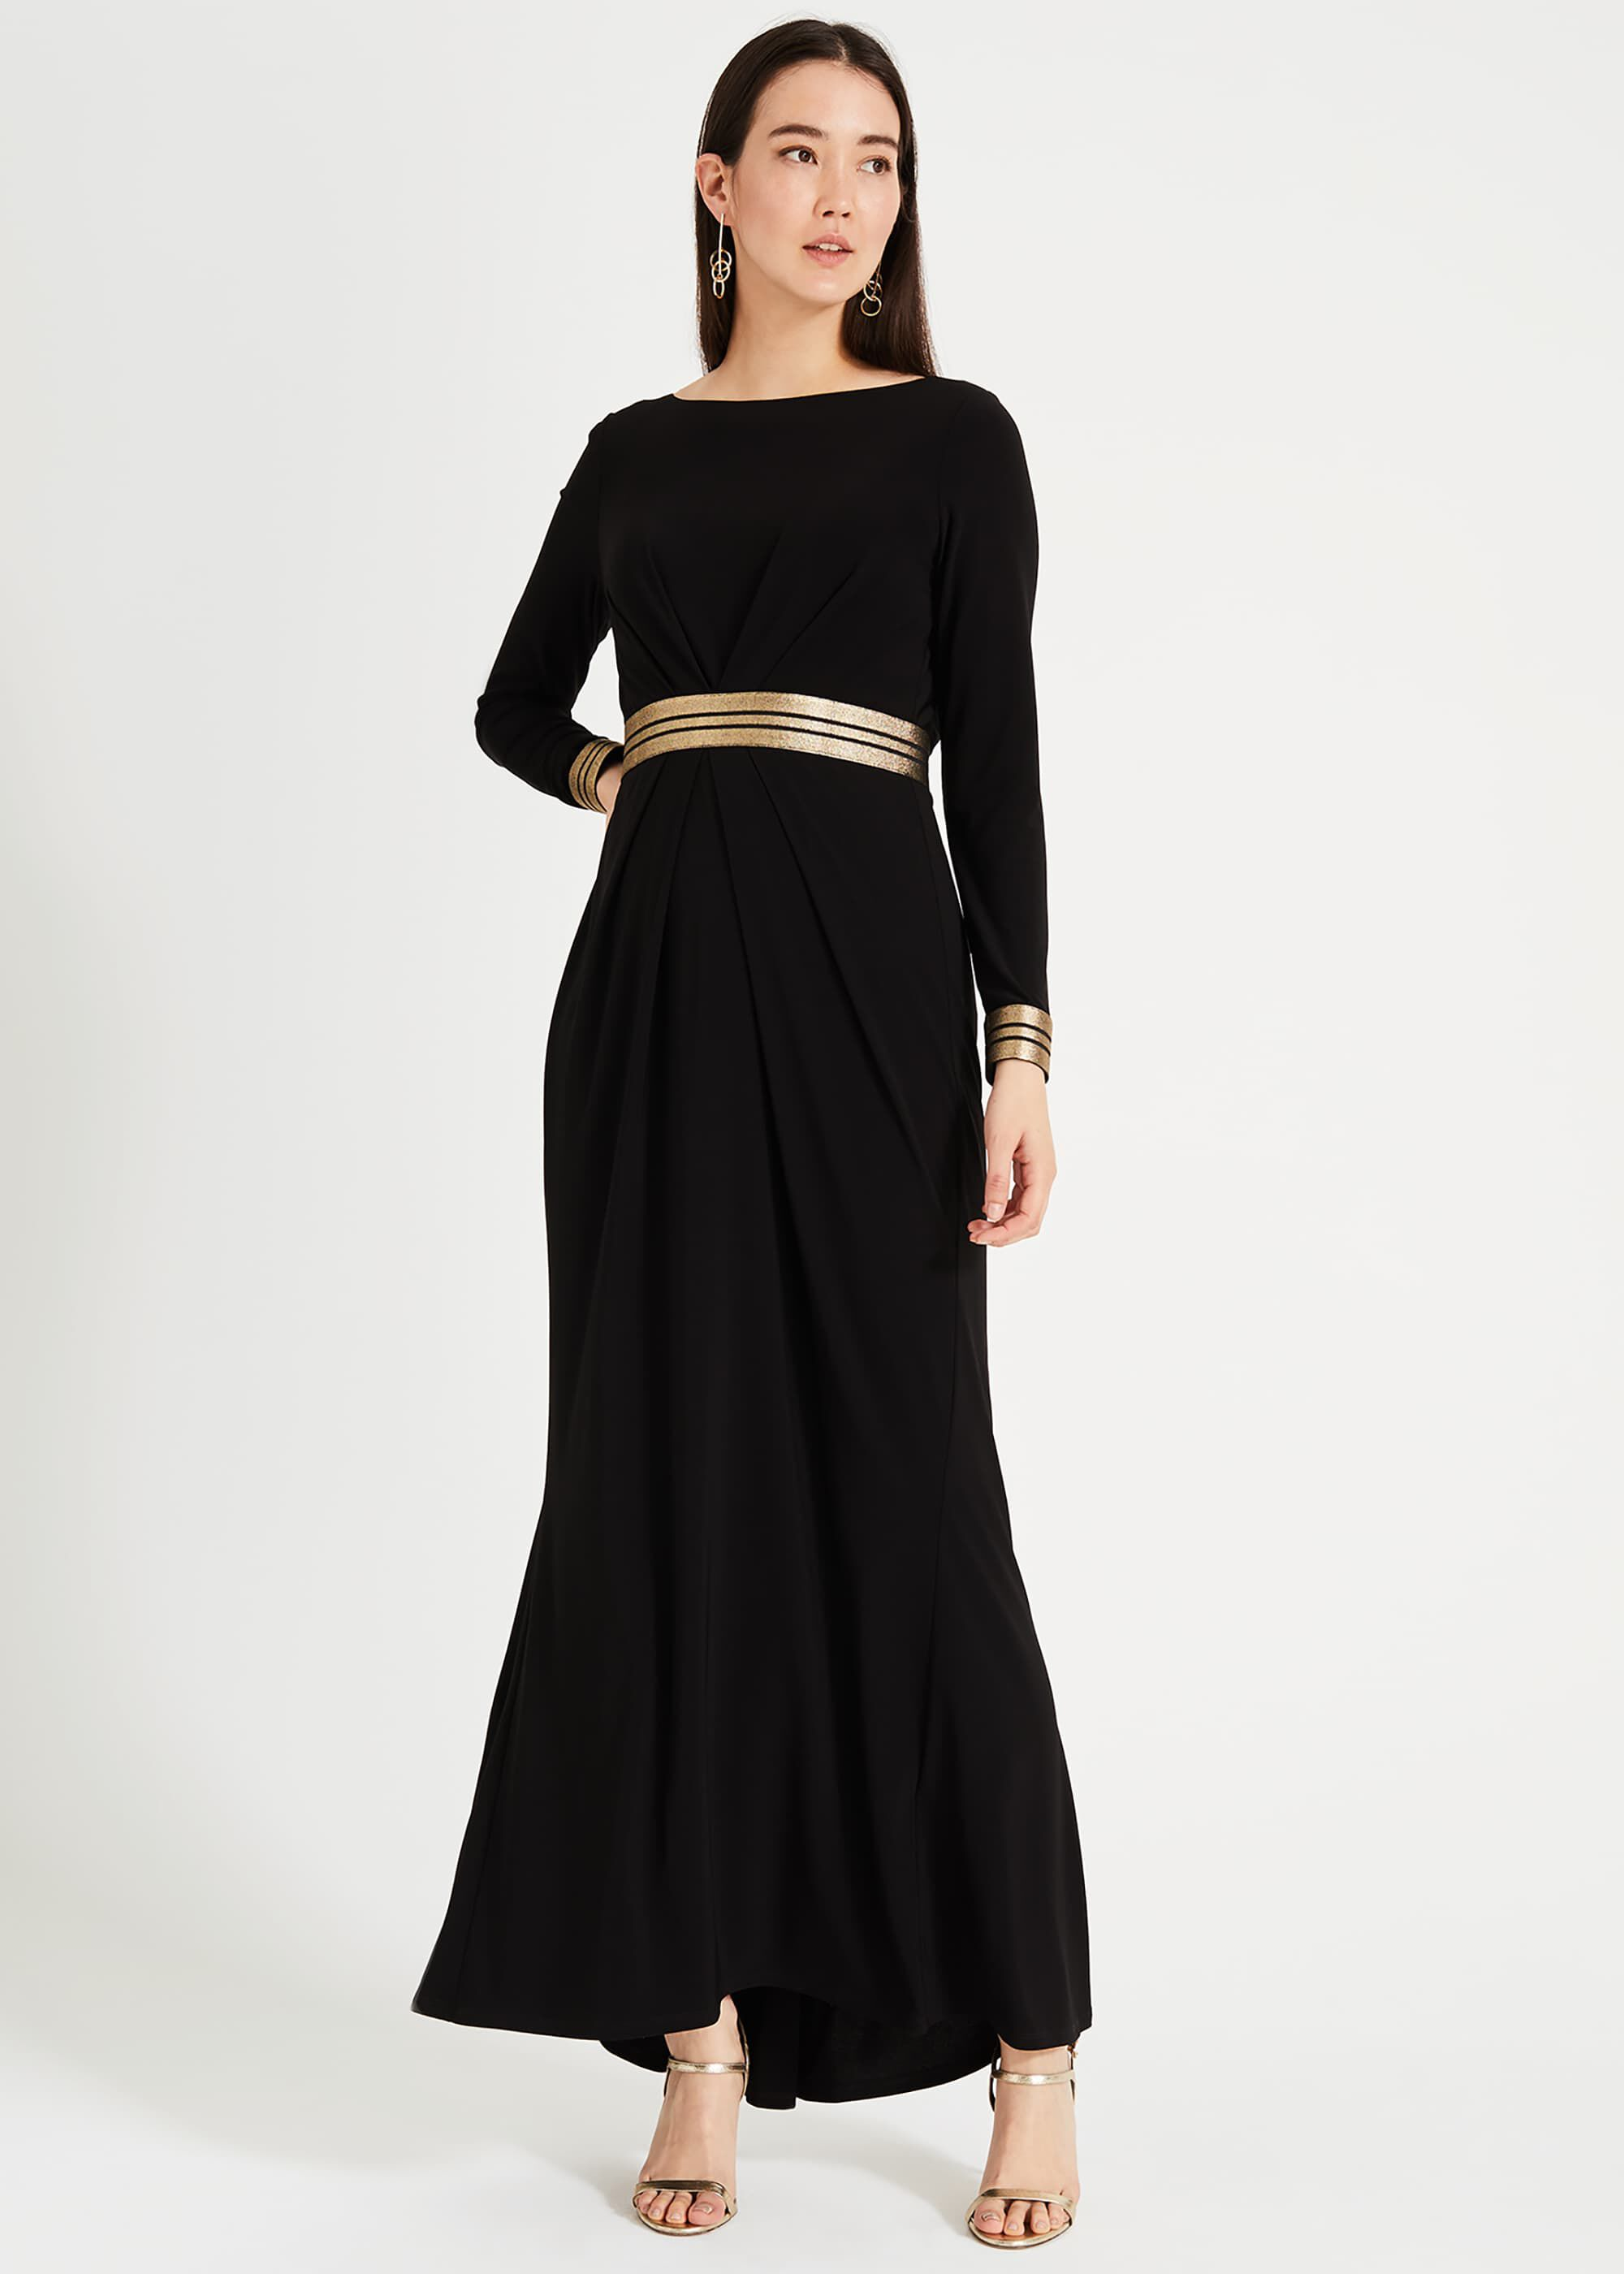 Phase Eight Faber Maxi Dress, Black, Maxi, Occasion Dress